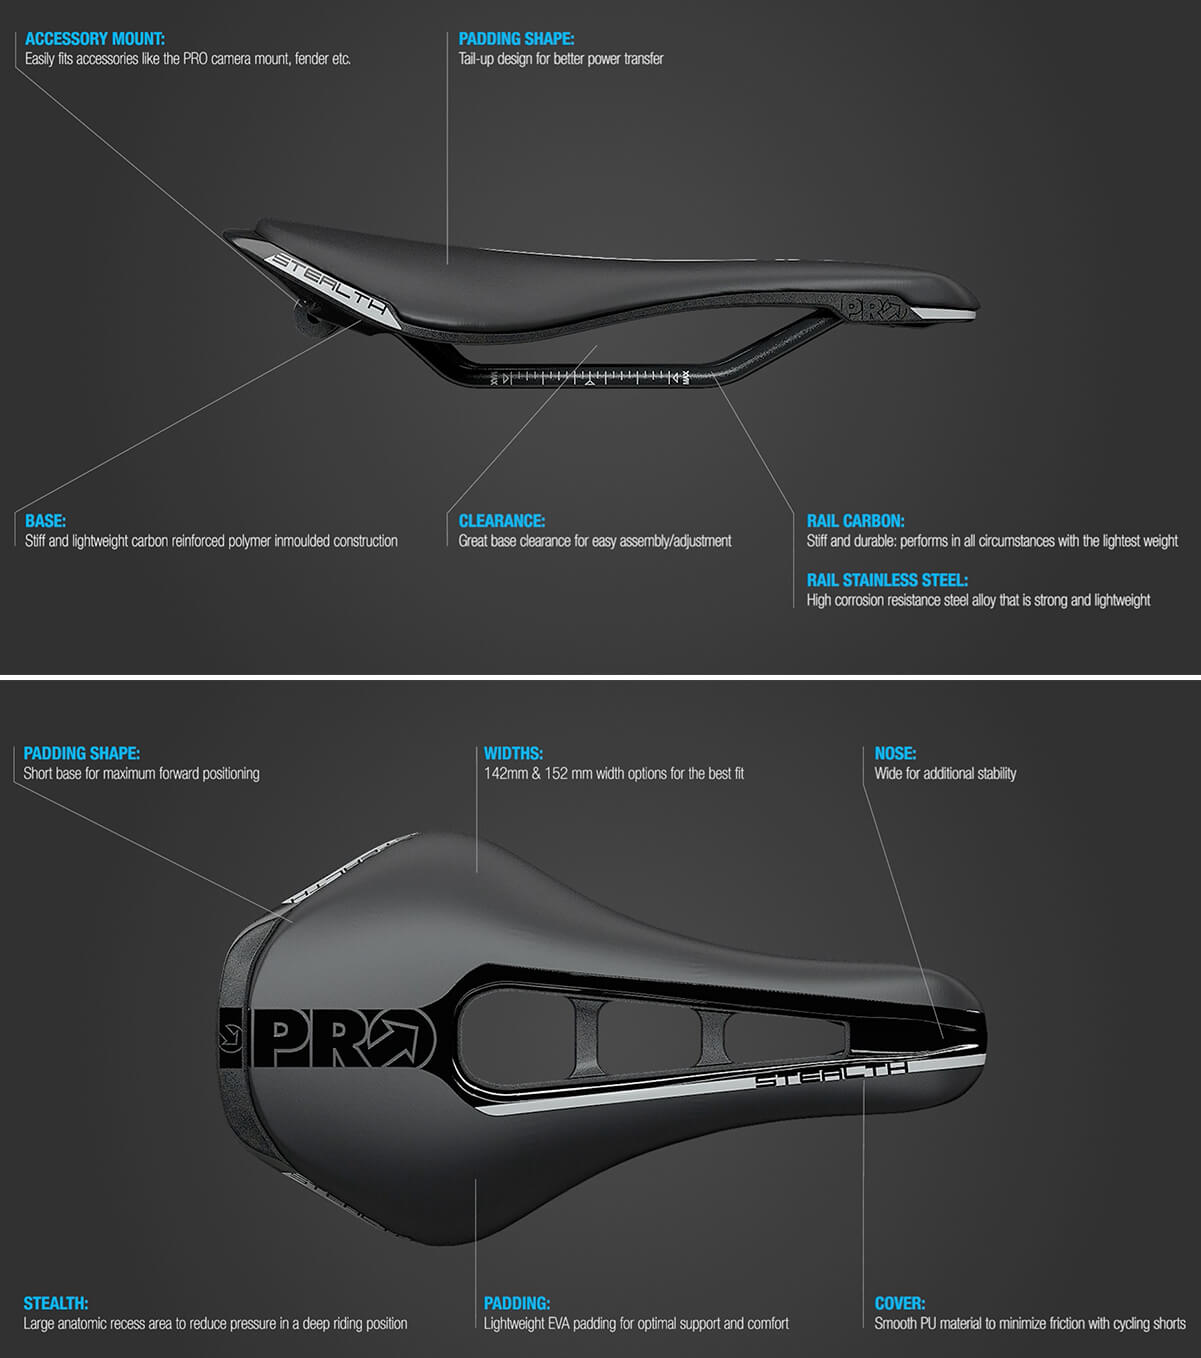 PRO Stealth Saddle Information - Contender Bicycles